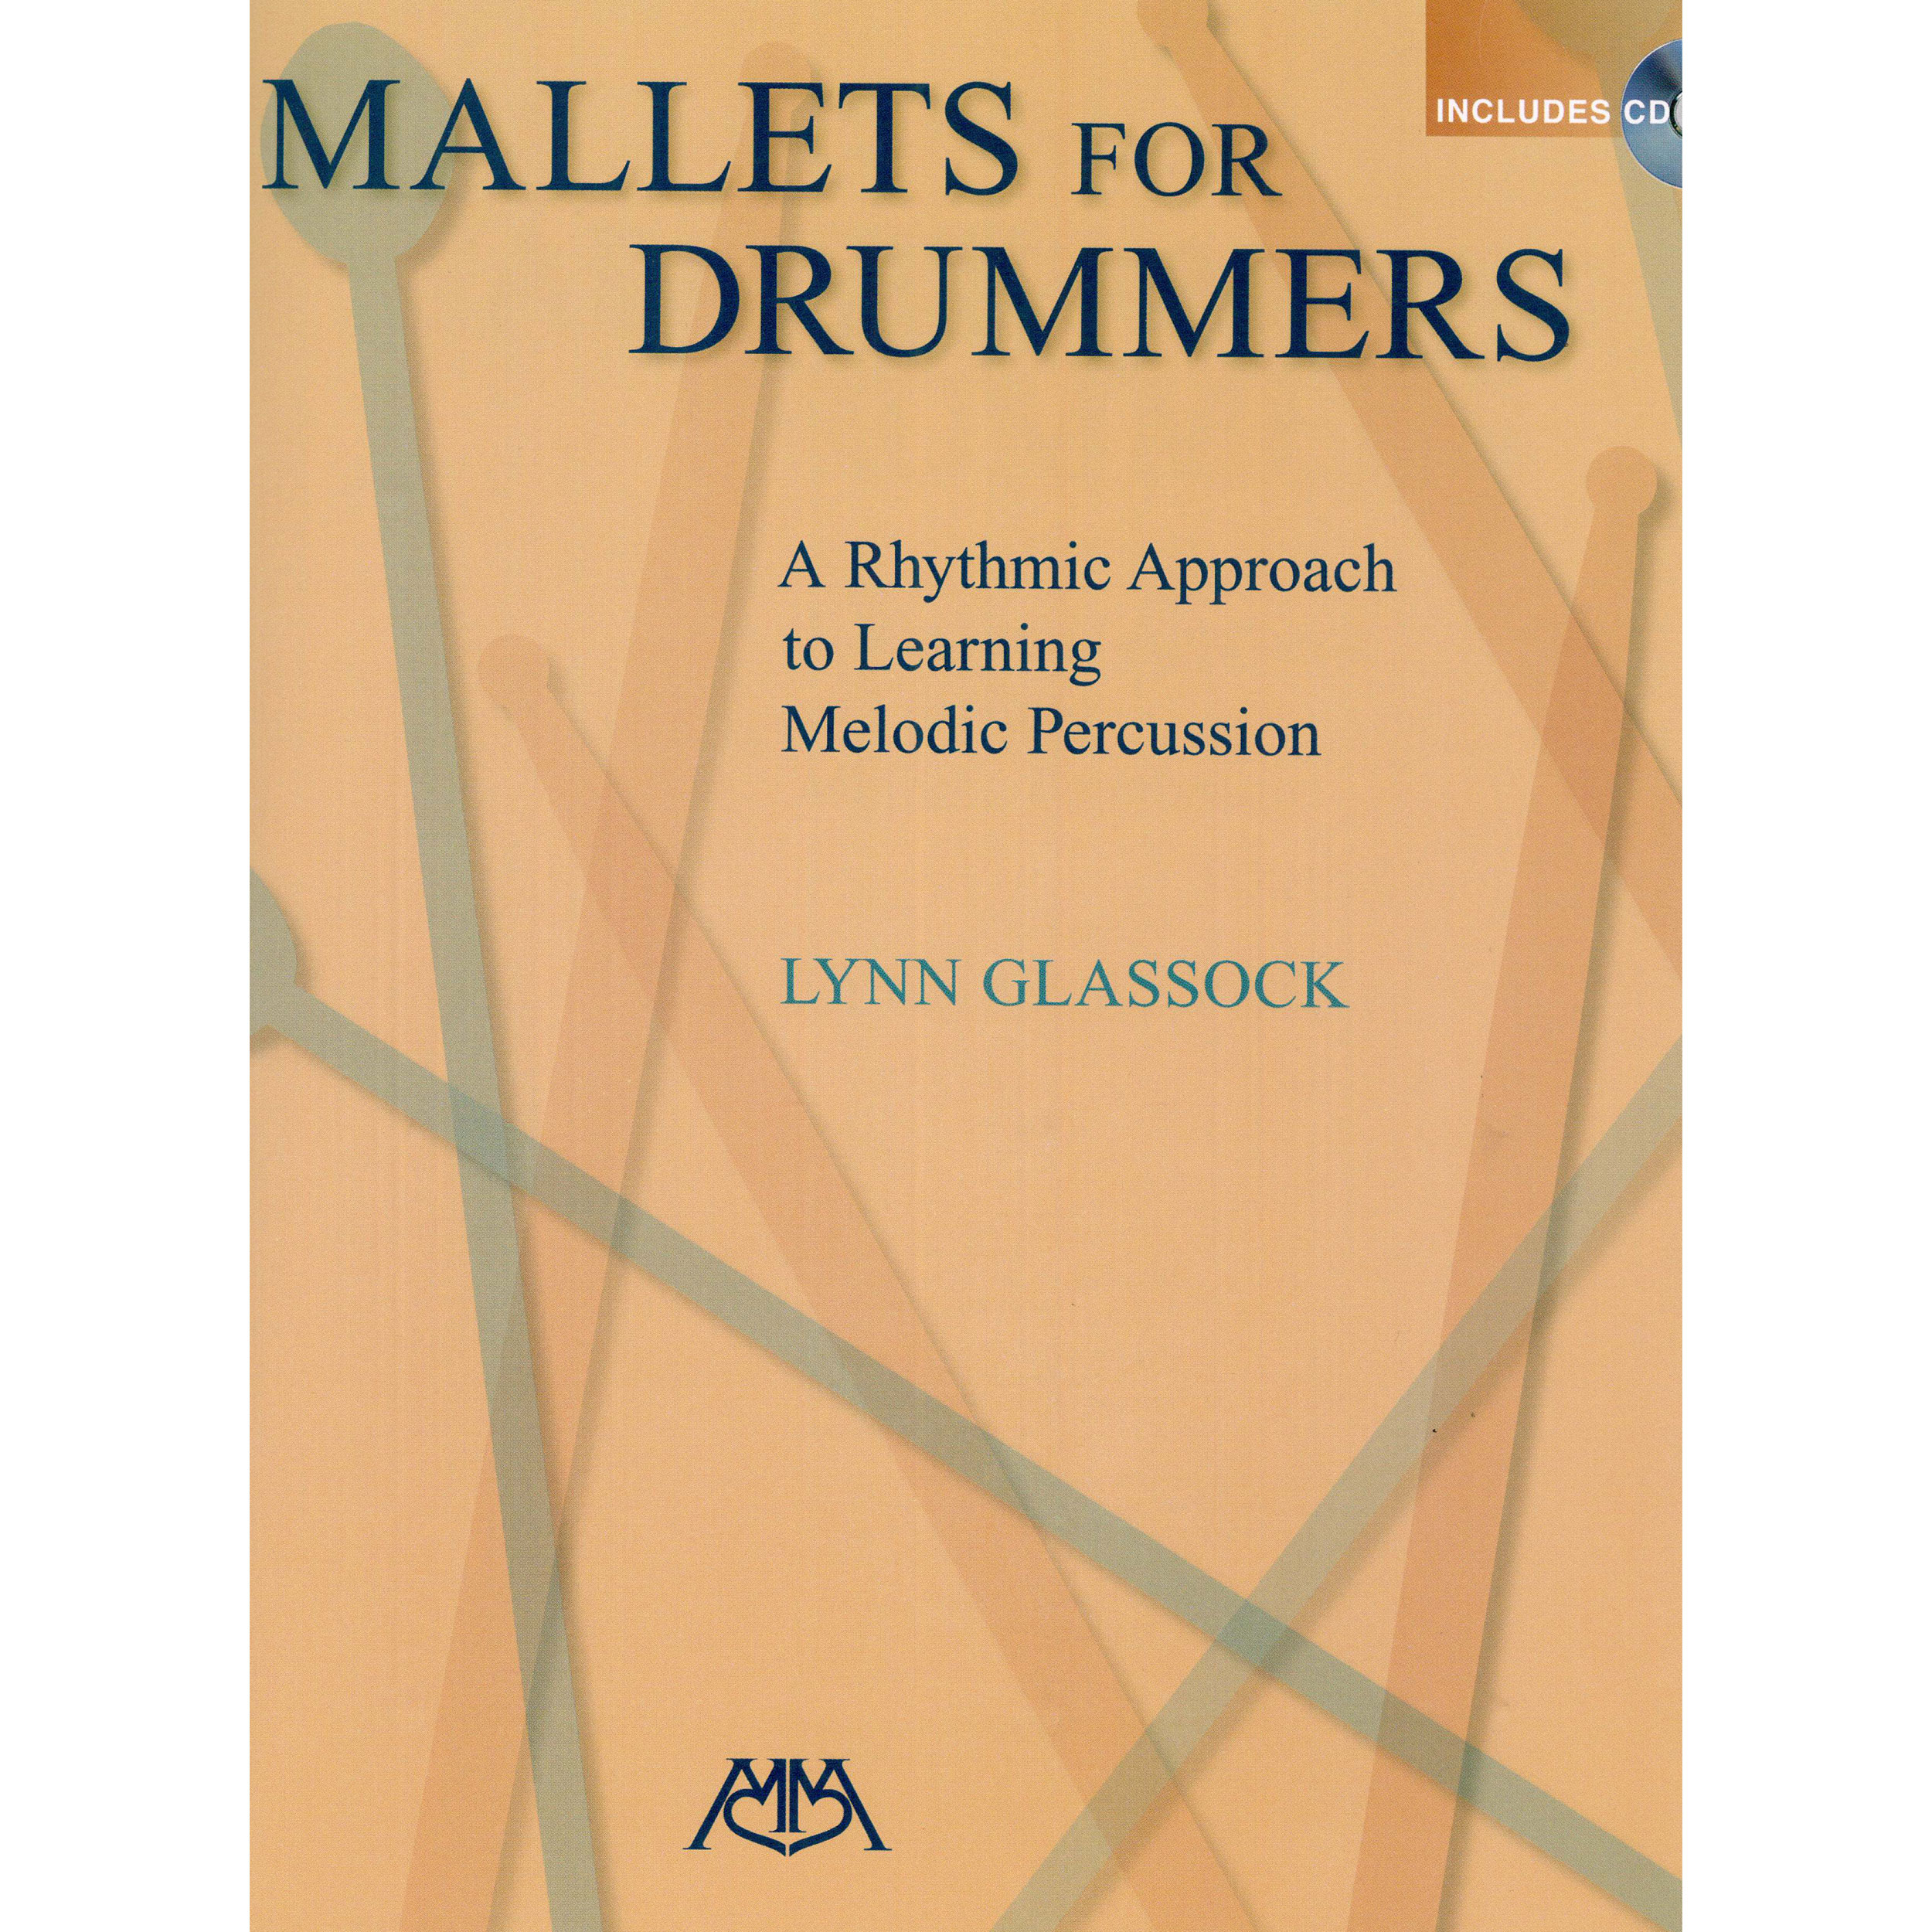 Mallets for Drummers by Lynn Glassock